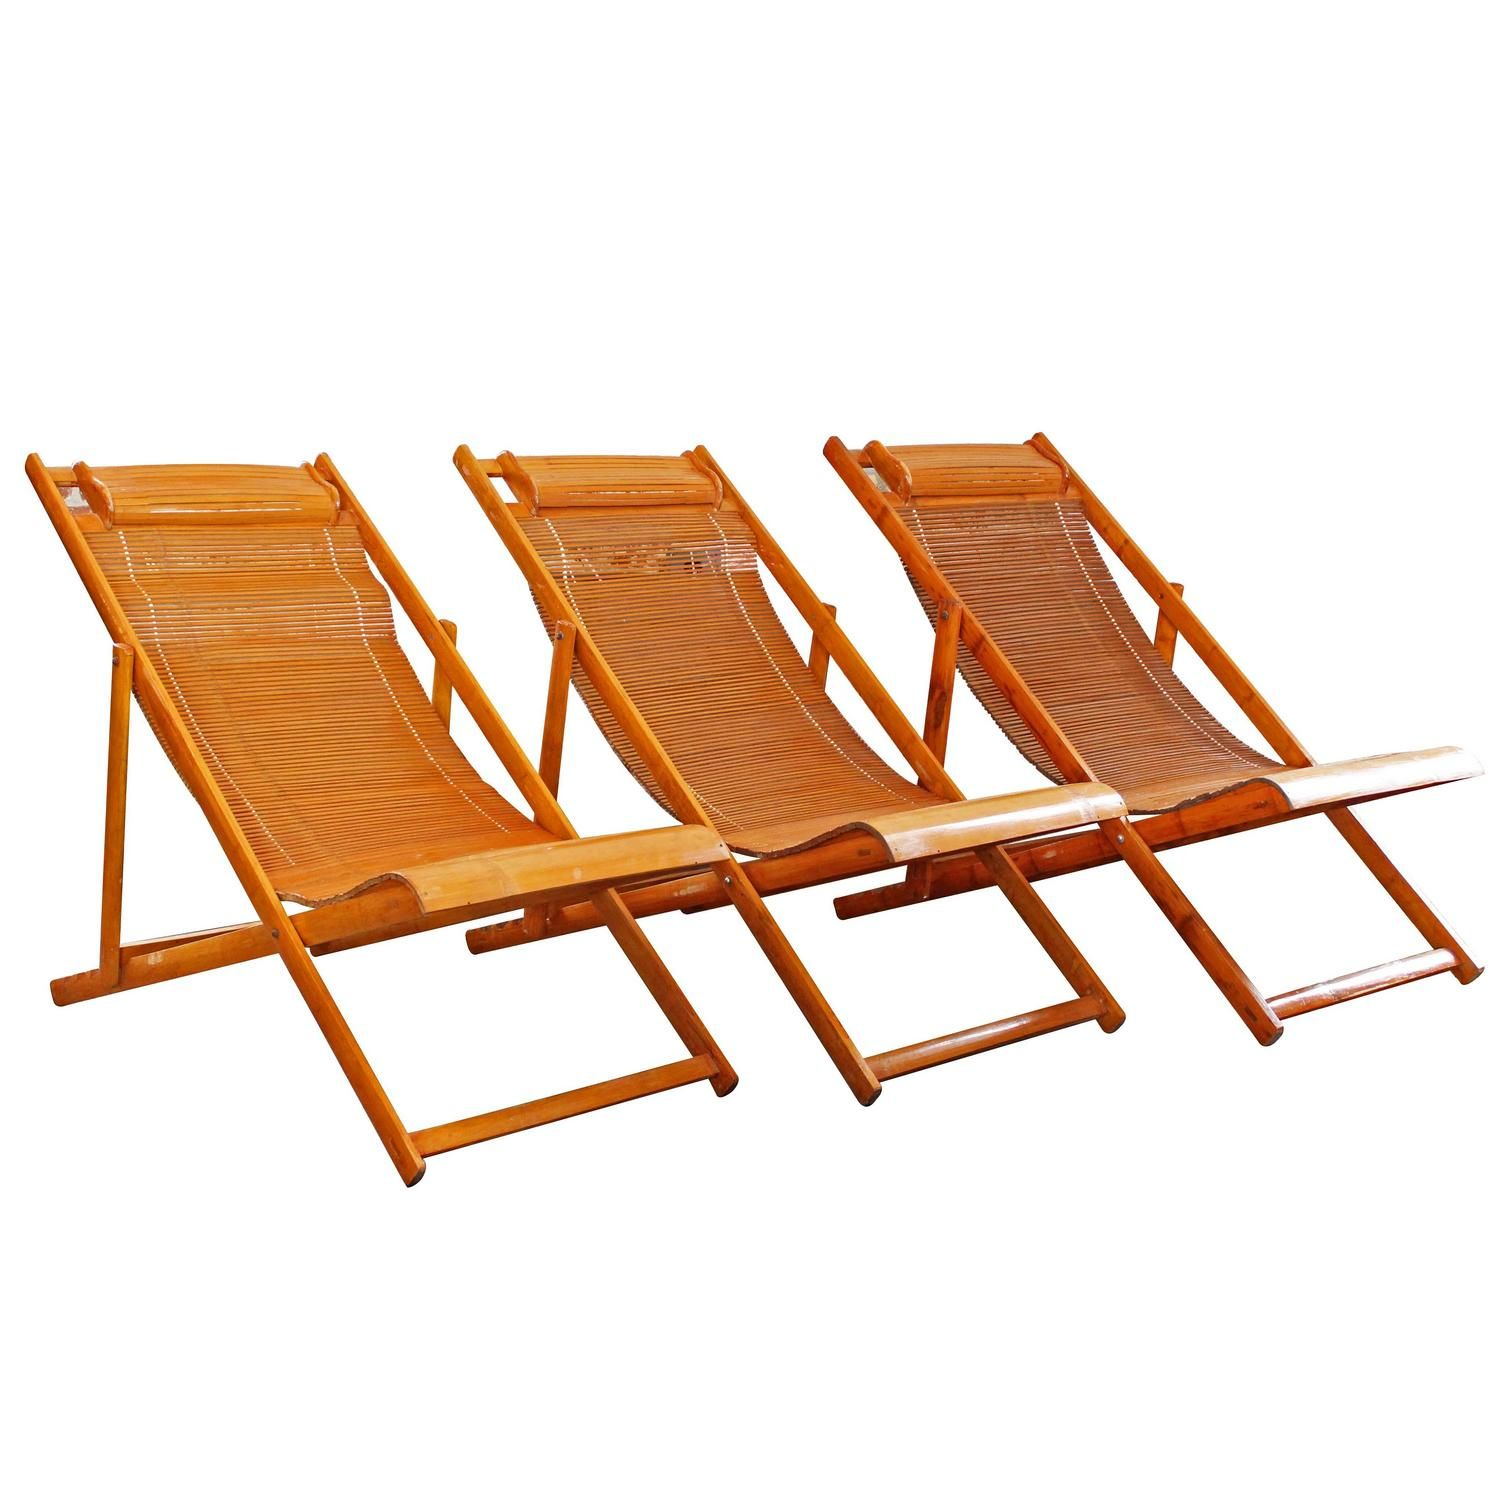 Vintage Bamboo Wood Anese Deck Chairs Loungers Outdoor Fold Up Lounge